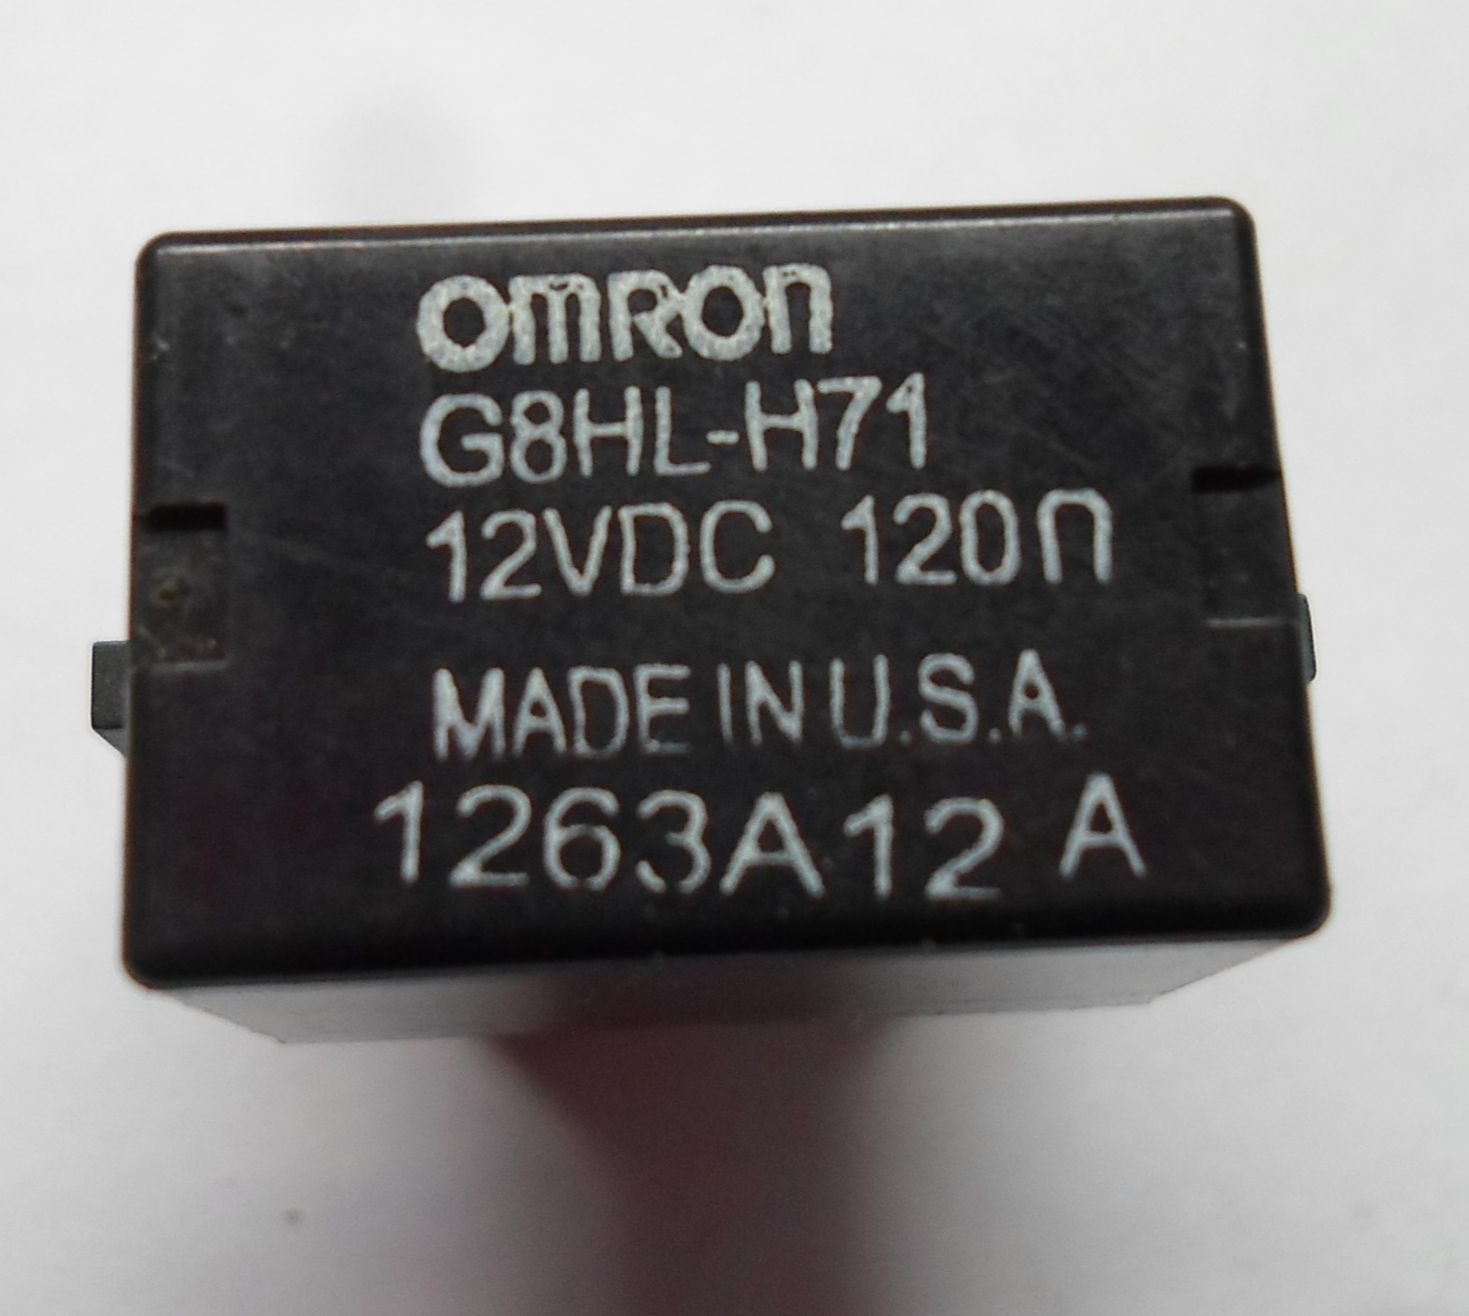 HONDA OMRON RELAY G8HL-H71  OEM FREE FAST SHIPPING 6 MONTH WARRANTY! H4